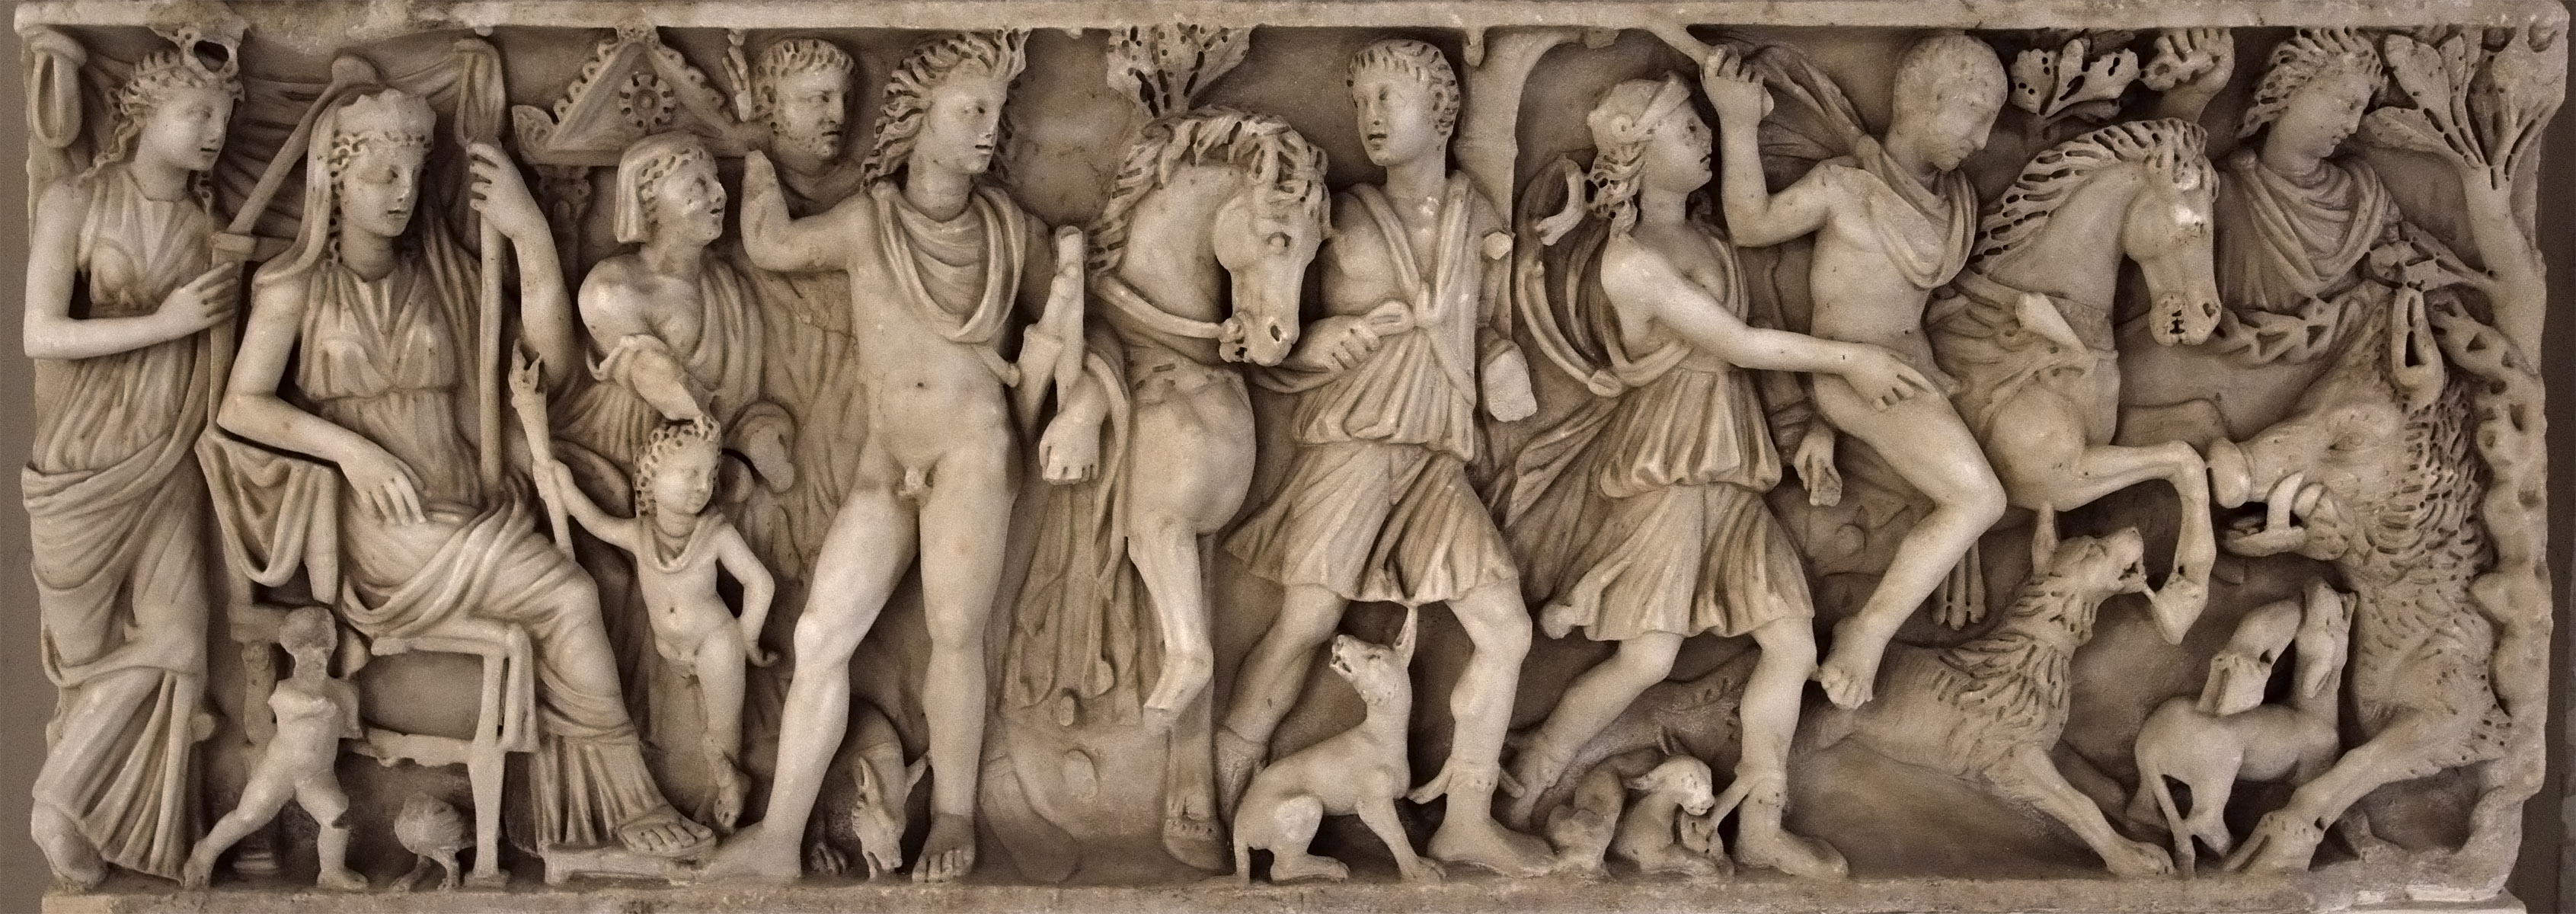 Sarcophagus with scenes of myth of Phaedra and Hippolytus (front panel). Marble. 240—250 СЕ. Local production (Campania workshop). Capua, Duomo, crypt